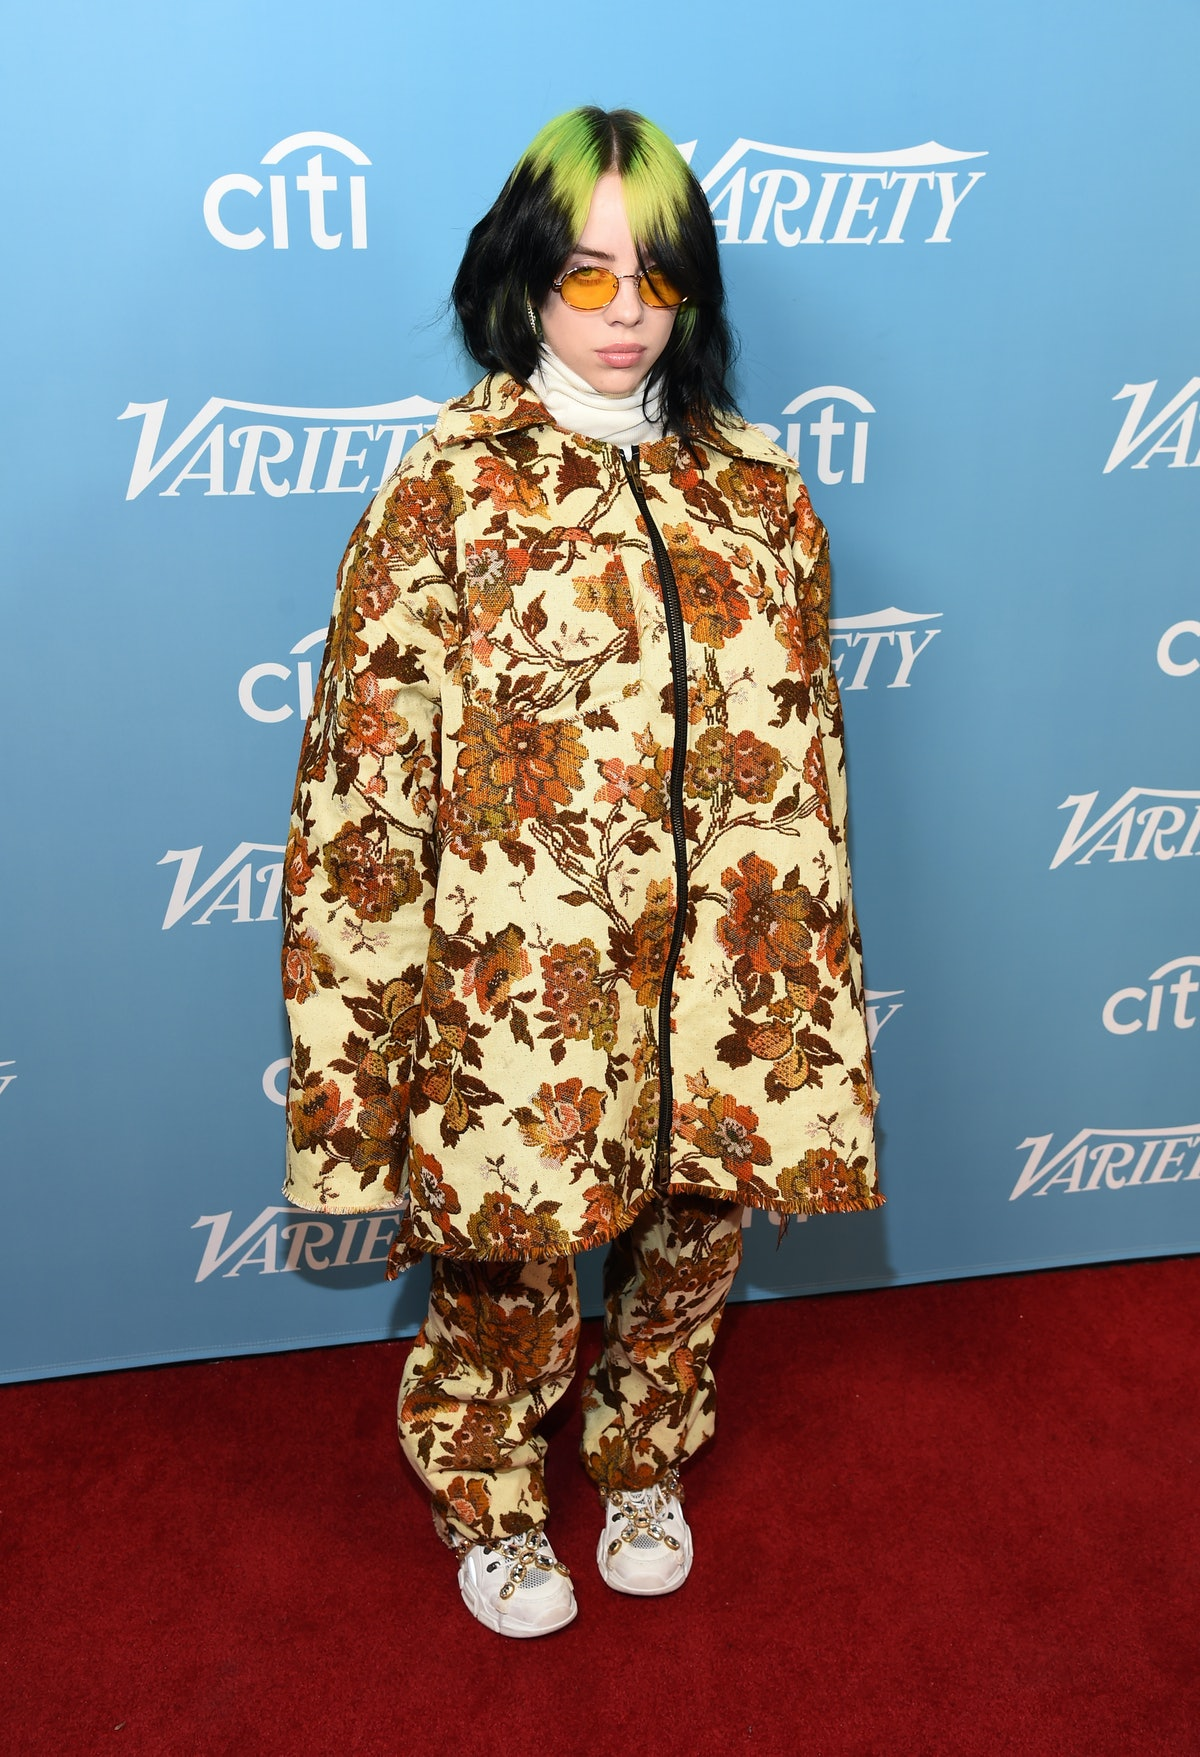 Billie Eilish arrives at the 2019 Variety's Hitmakers Brunch at Soho House on December 07, 2019 in W...